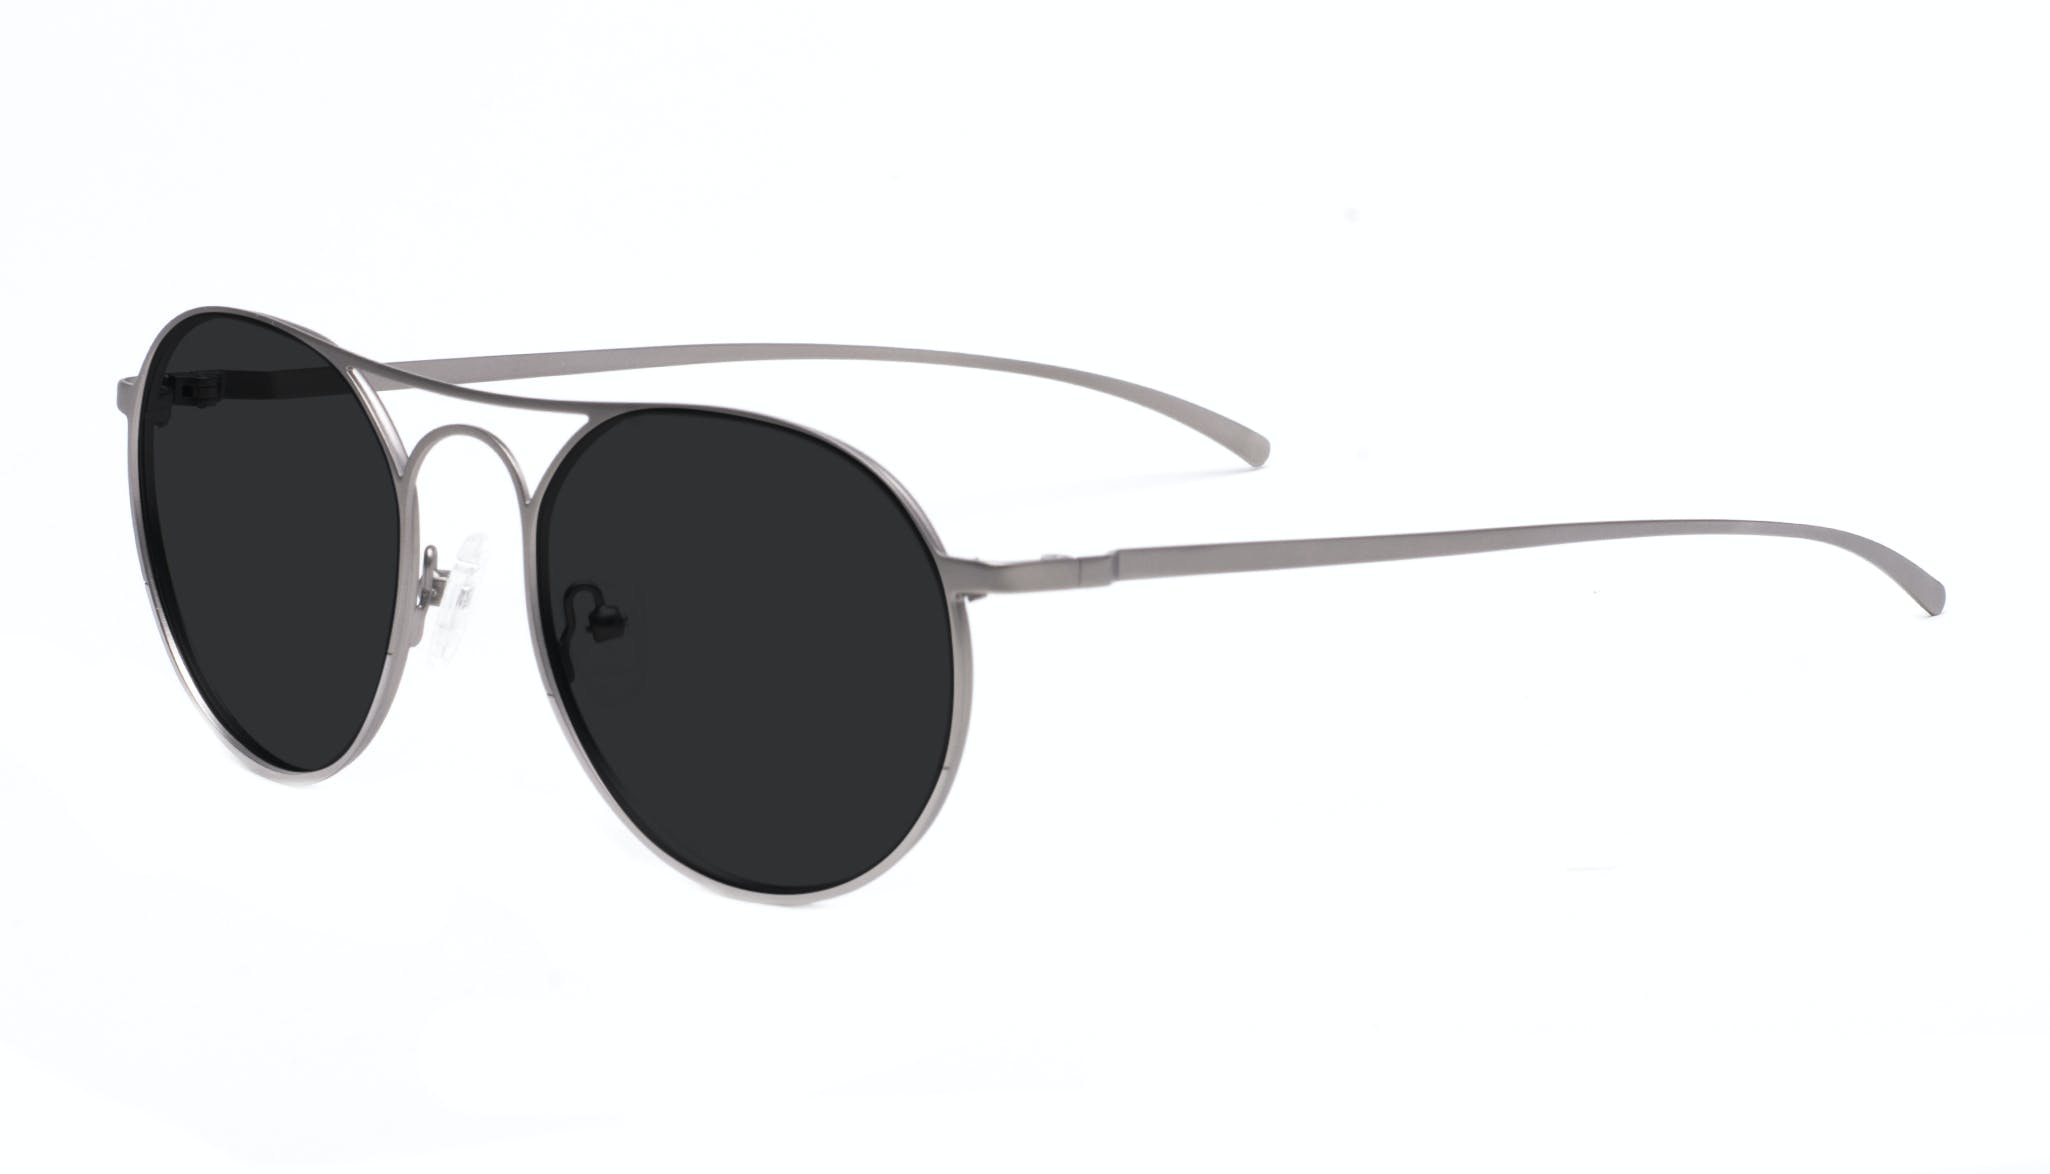 Affordable Fashion Glasses Aviator Round Sunglasses Men Contour Silver Tilt